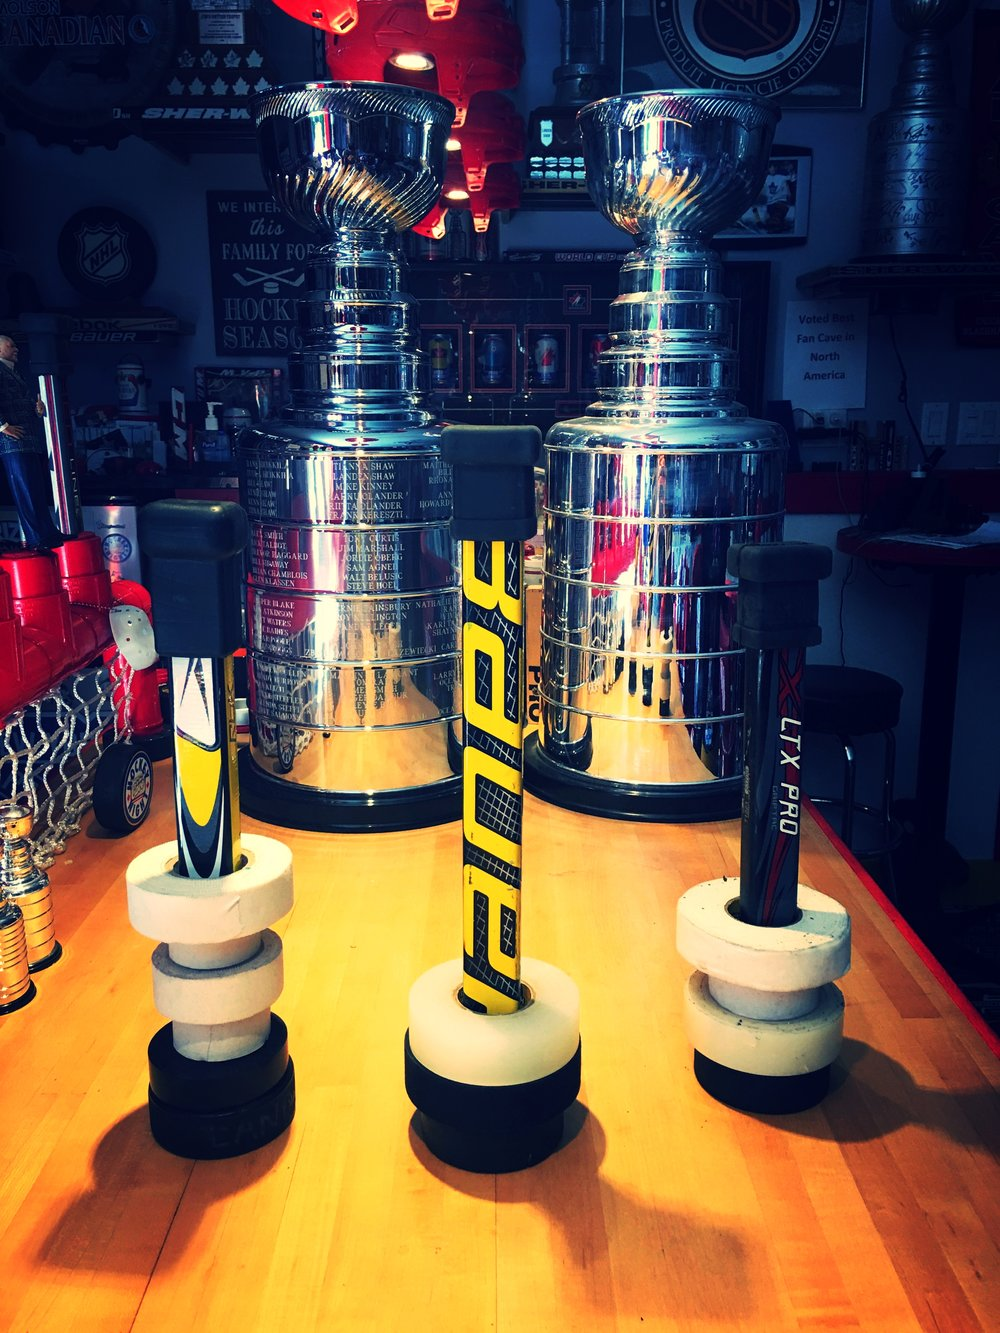 Eliminates Wasted Time Looking for Tape  - Our handmade Tape Towers keep your hockey tape organized in your bag.Holds 10 rolls of hockey stick, sock, electrical, duct, painters etc,,Each Tape Tower is one-of-a-kind and made from broken sticksEliminates wasted time searching your bag for tape